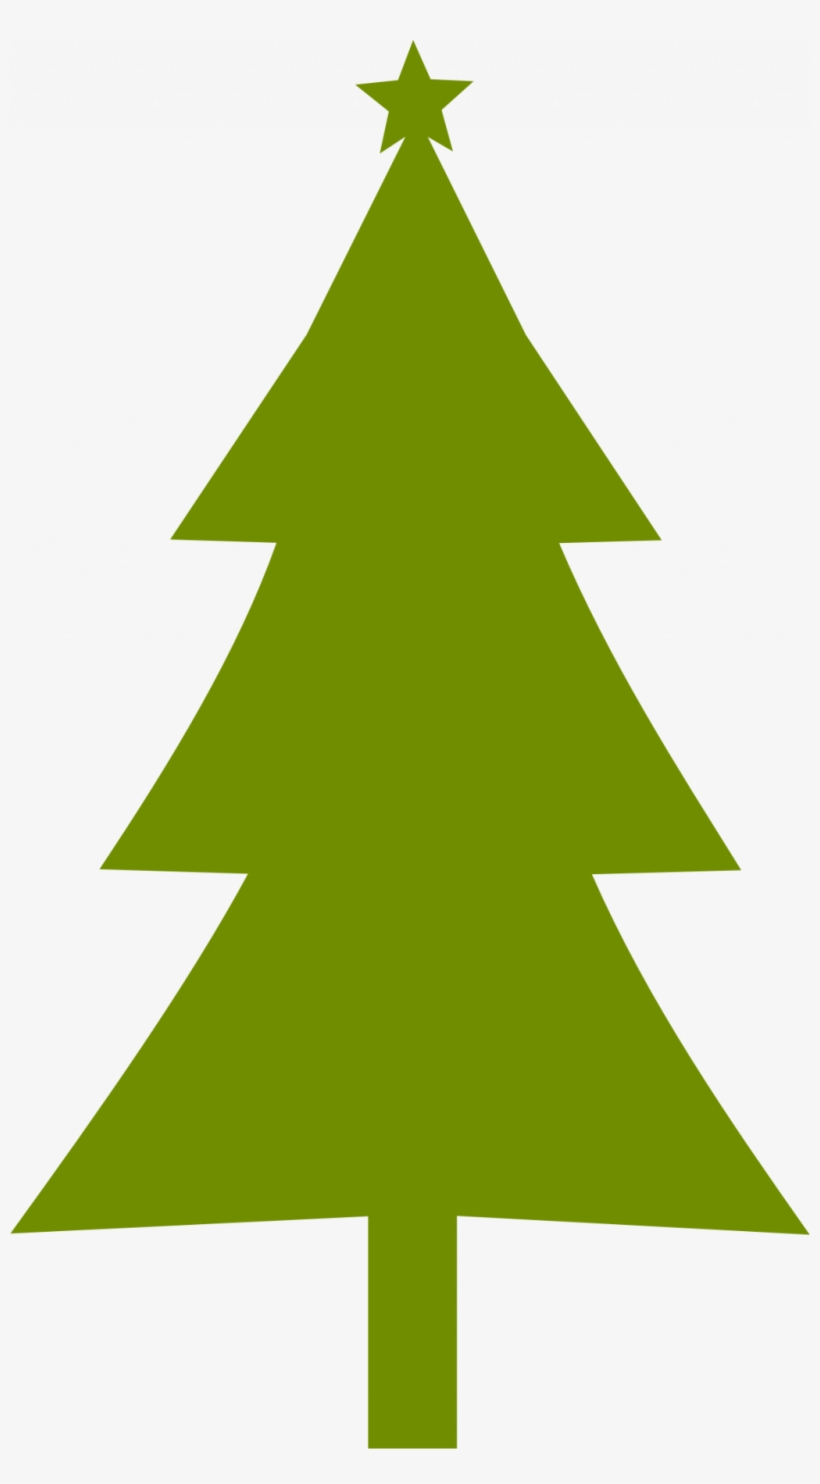 Christmas Tree Outline Clipart Png Simple Christmas Tree Clipart Png Image Transparent Png Free Download On Seekpng